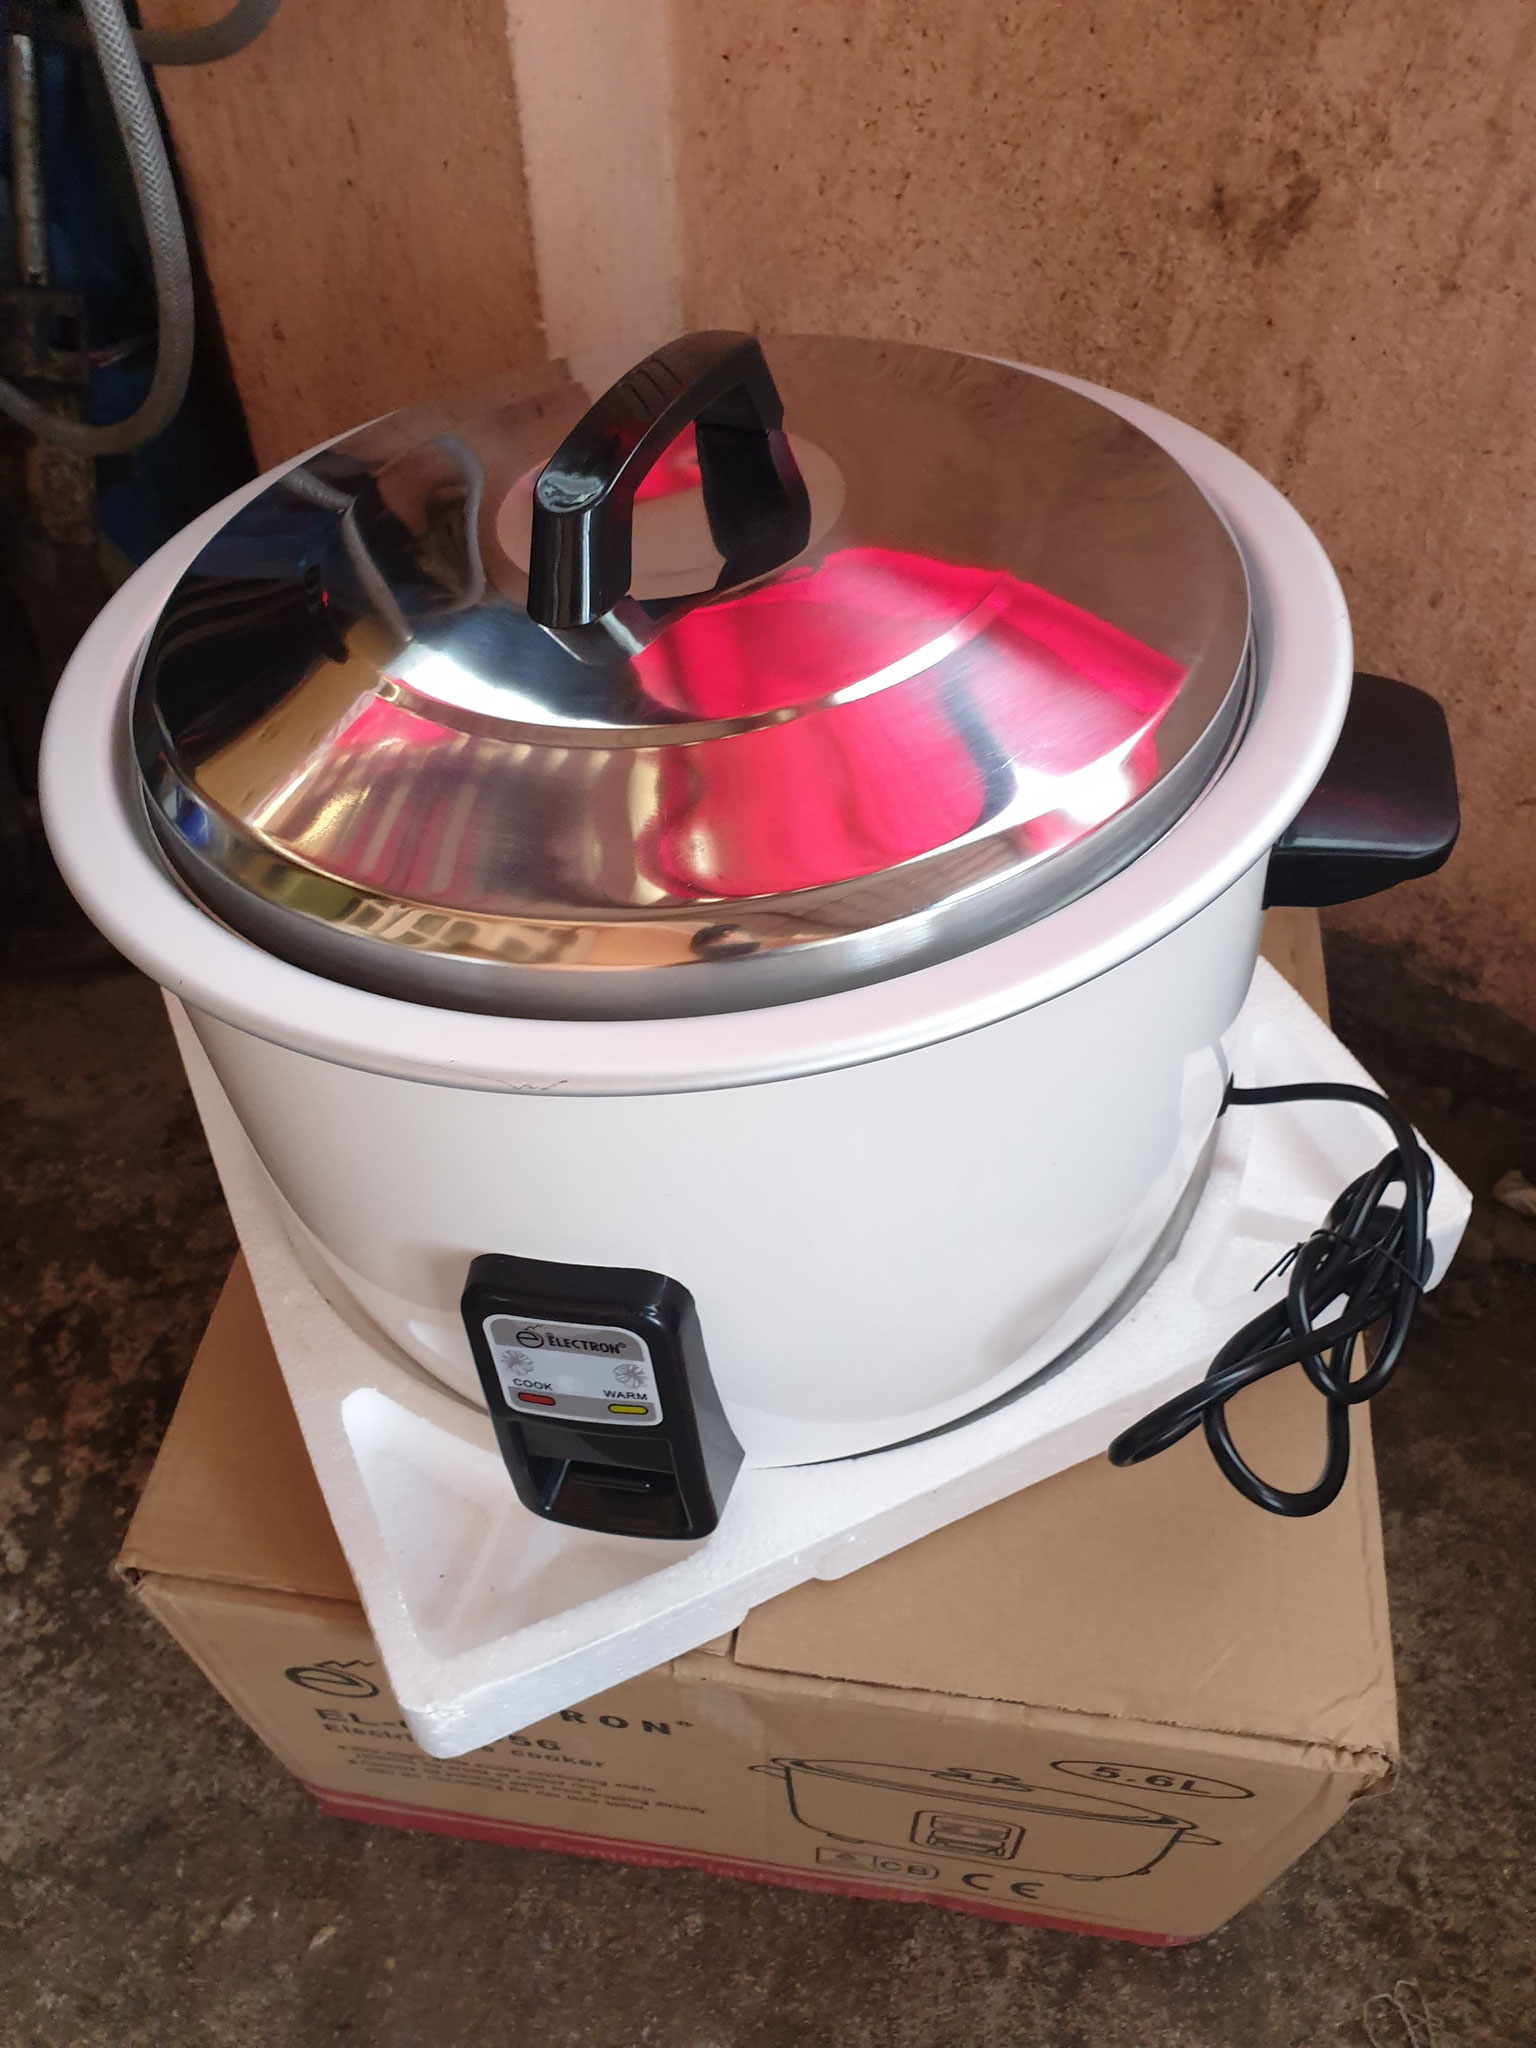 a new rice cooker